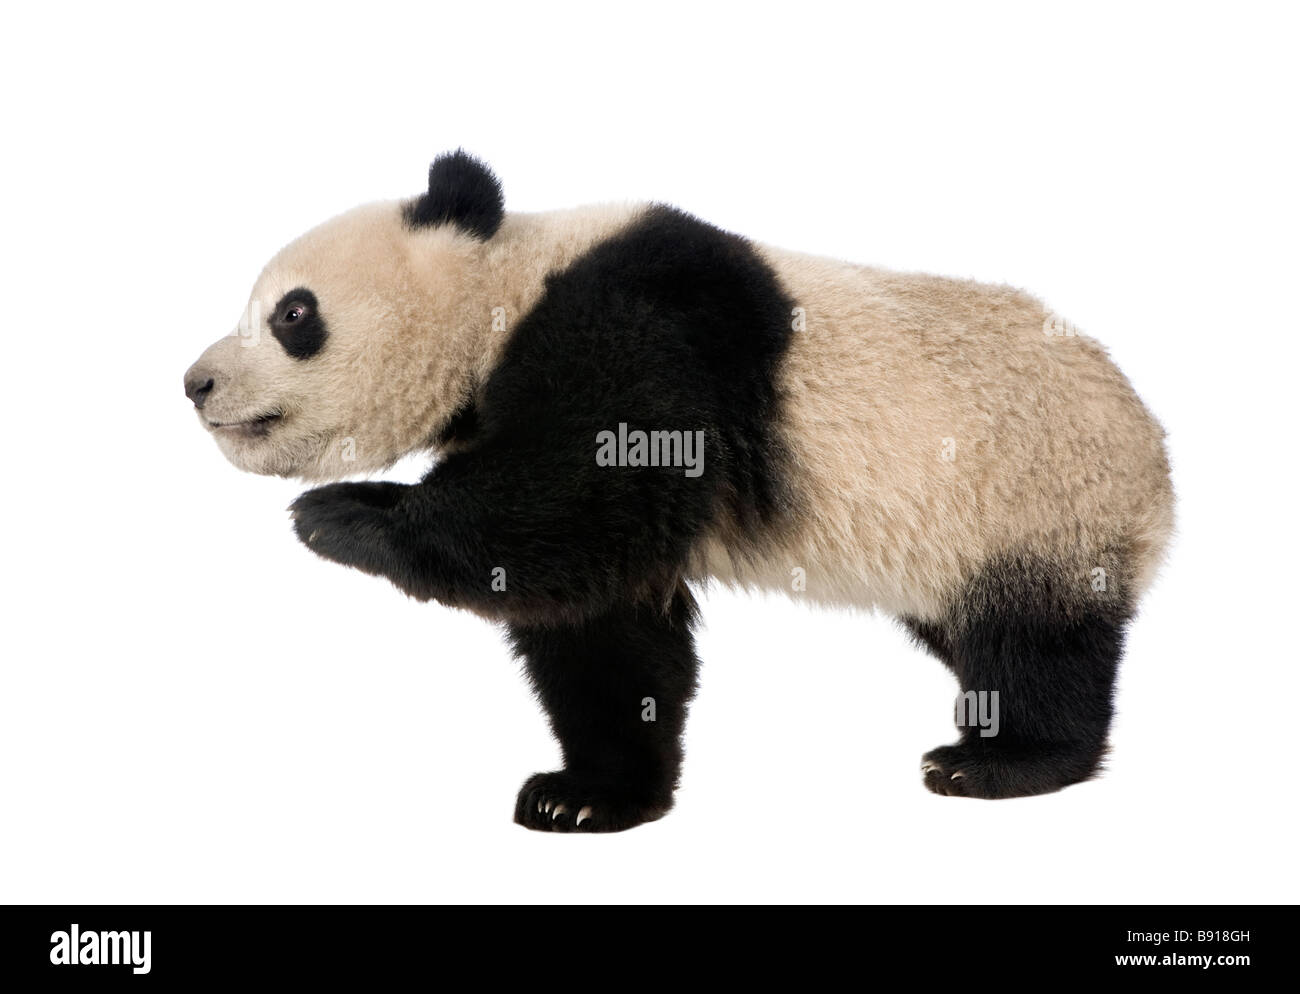 Giant Panda 18 months Ailuropoda melanoleuca in front of a white background Stock Photo